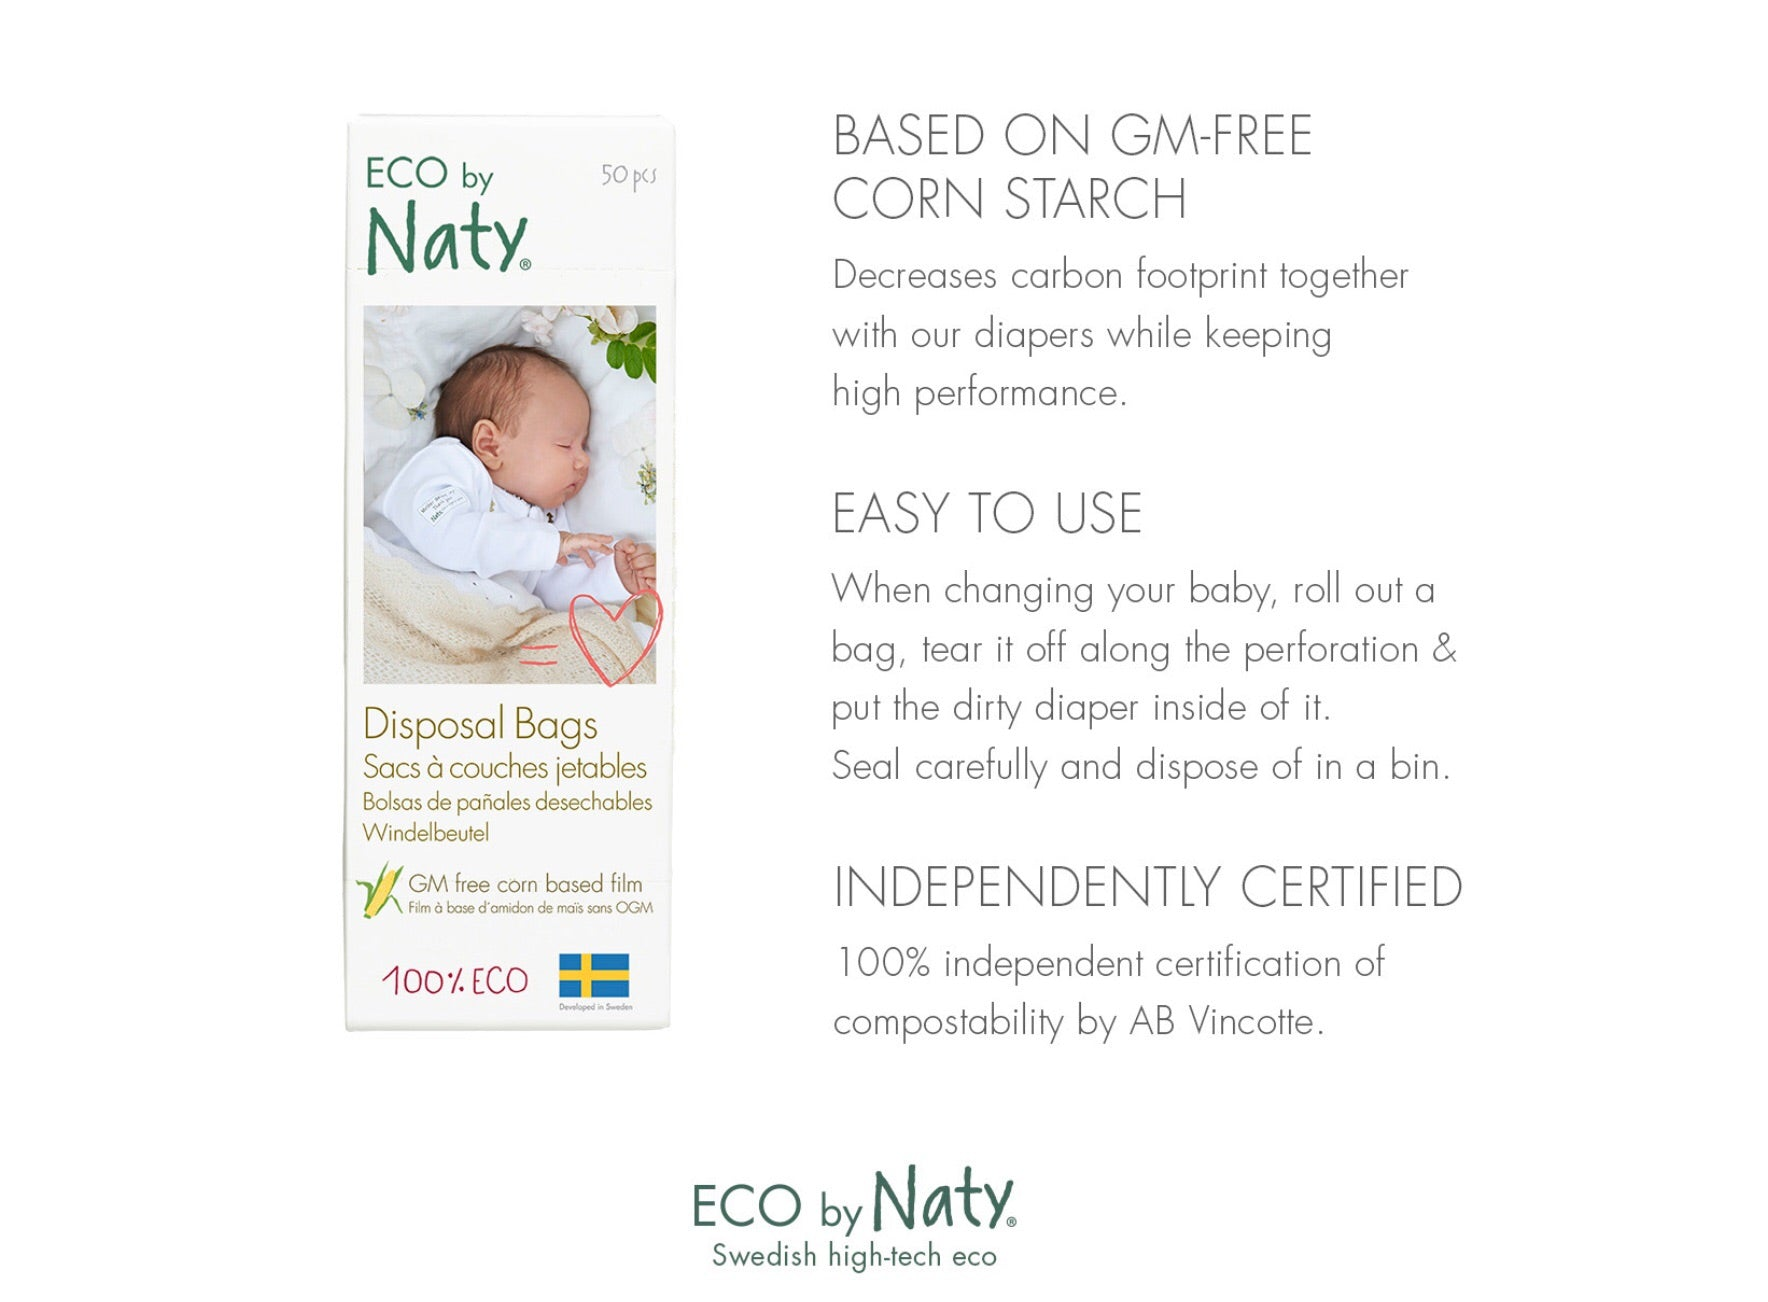 ECO by Naty | Disposable Bag